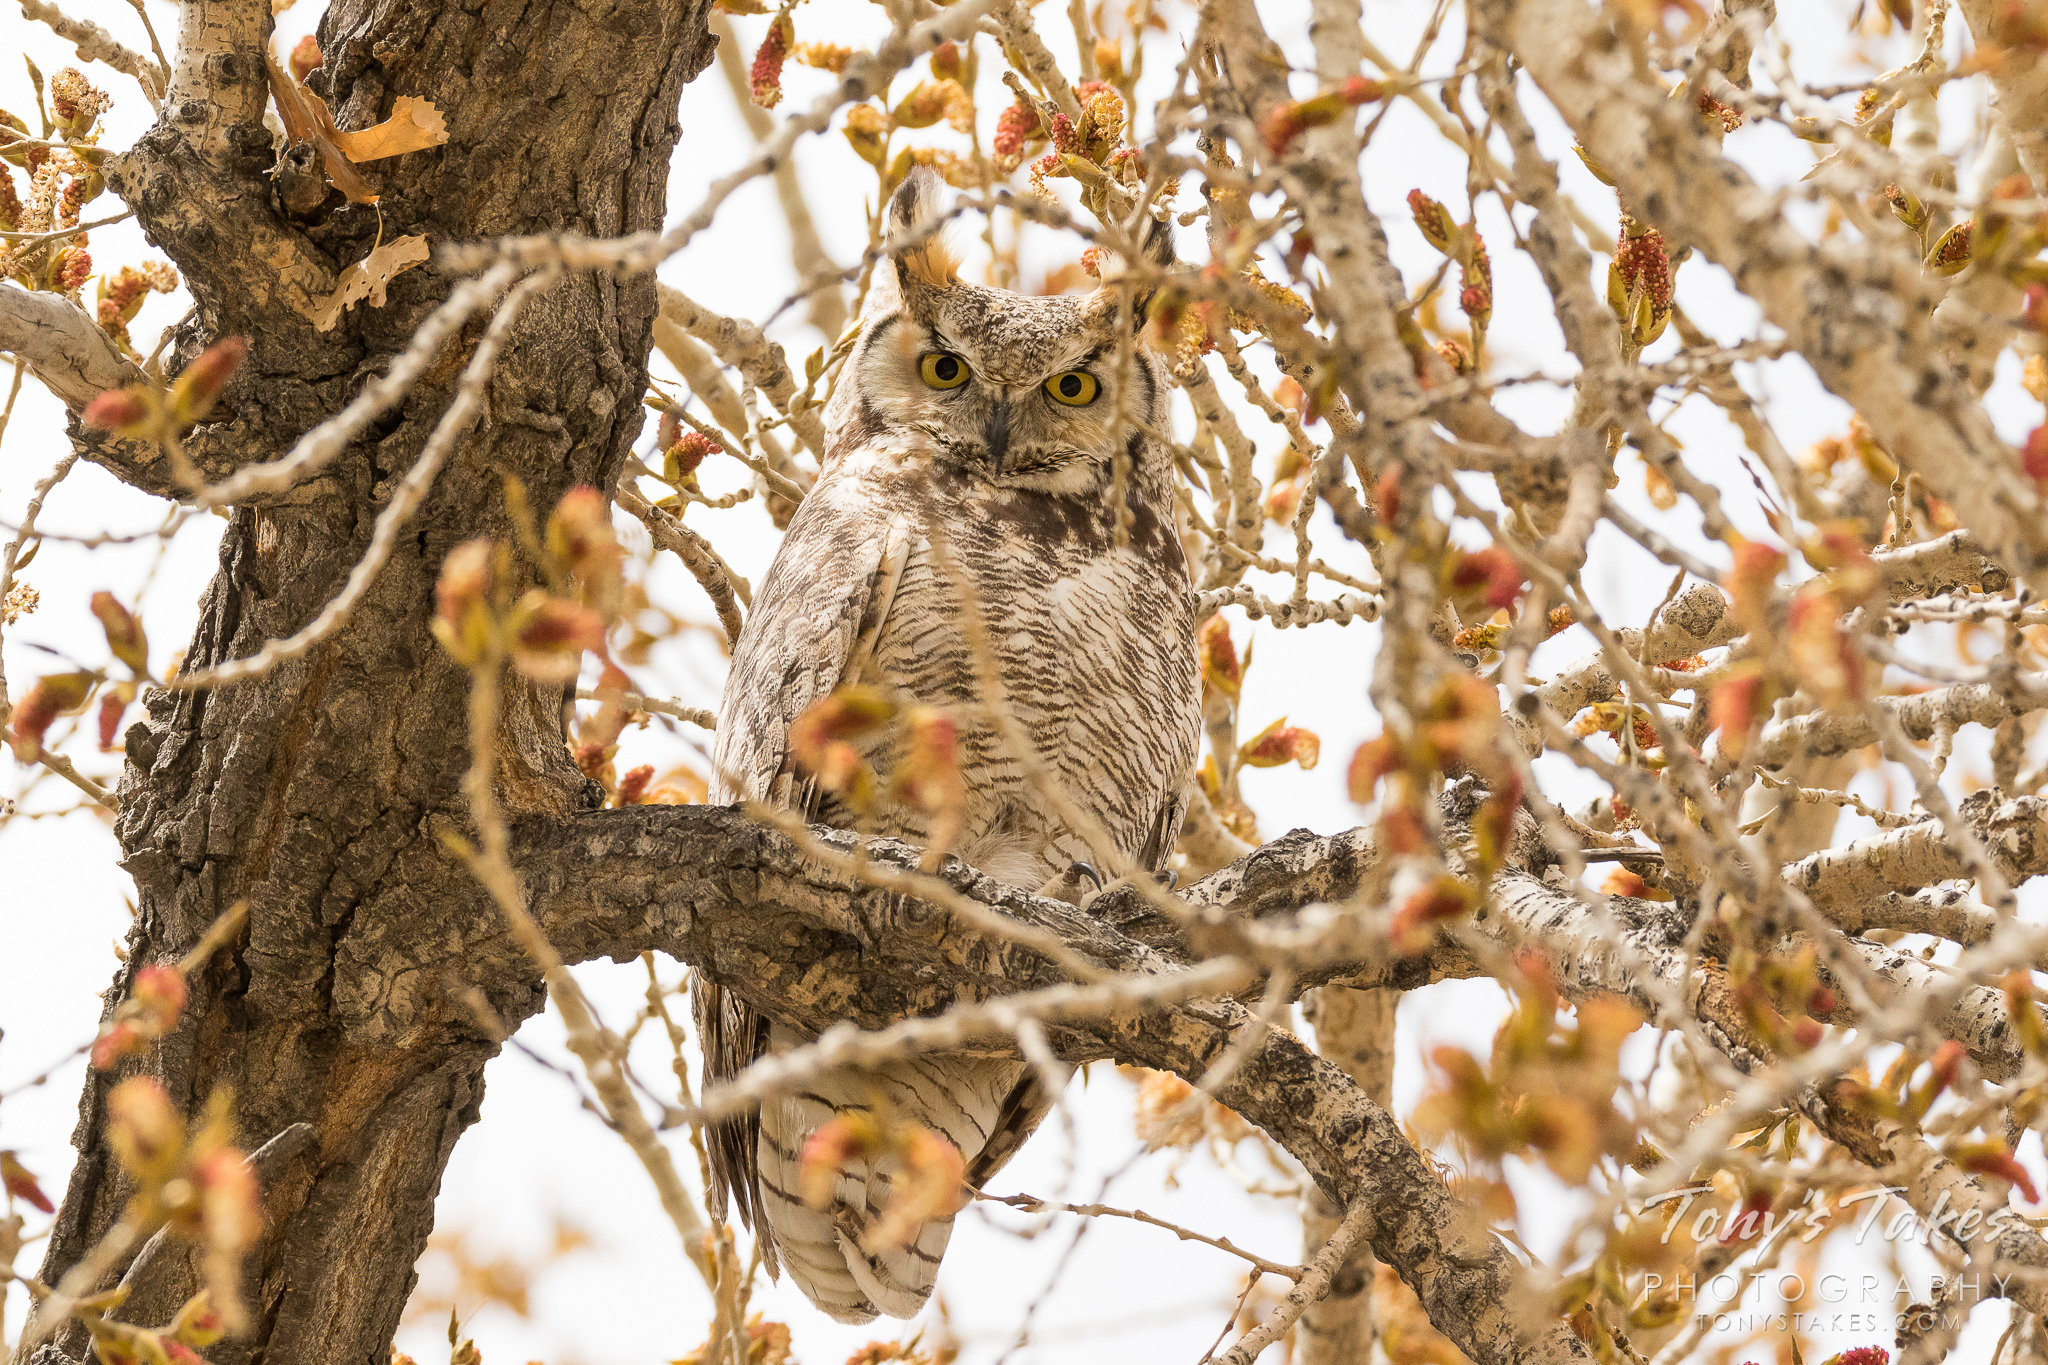 A female Great Horned Owl keeps close watch from her perch in Thornton, Colorado.  (© Tony's Takes)